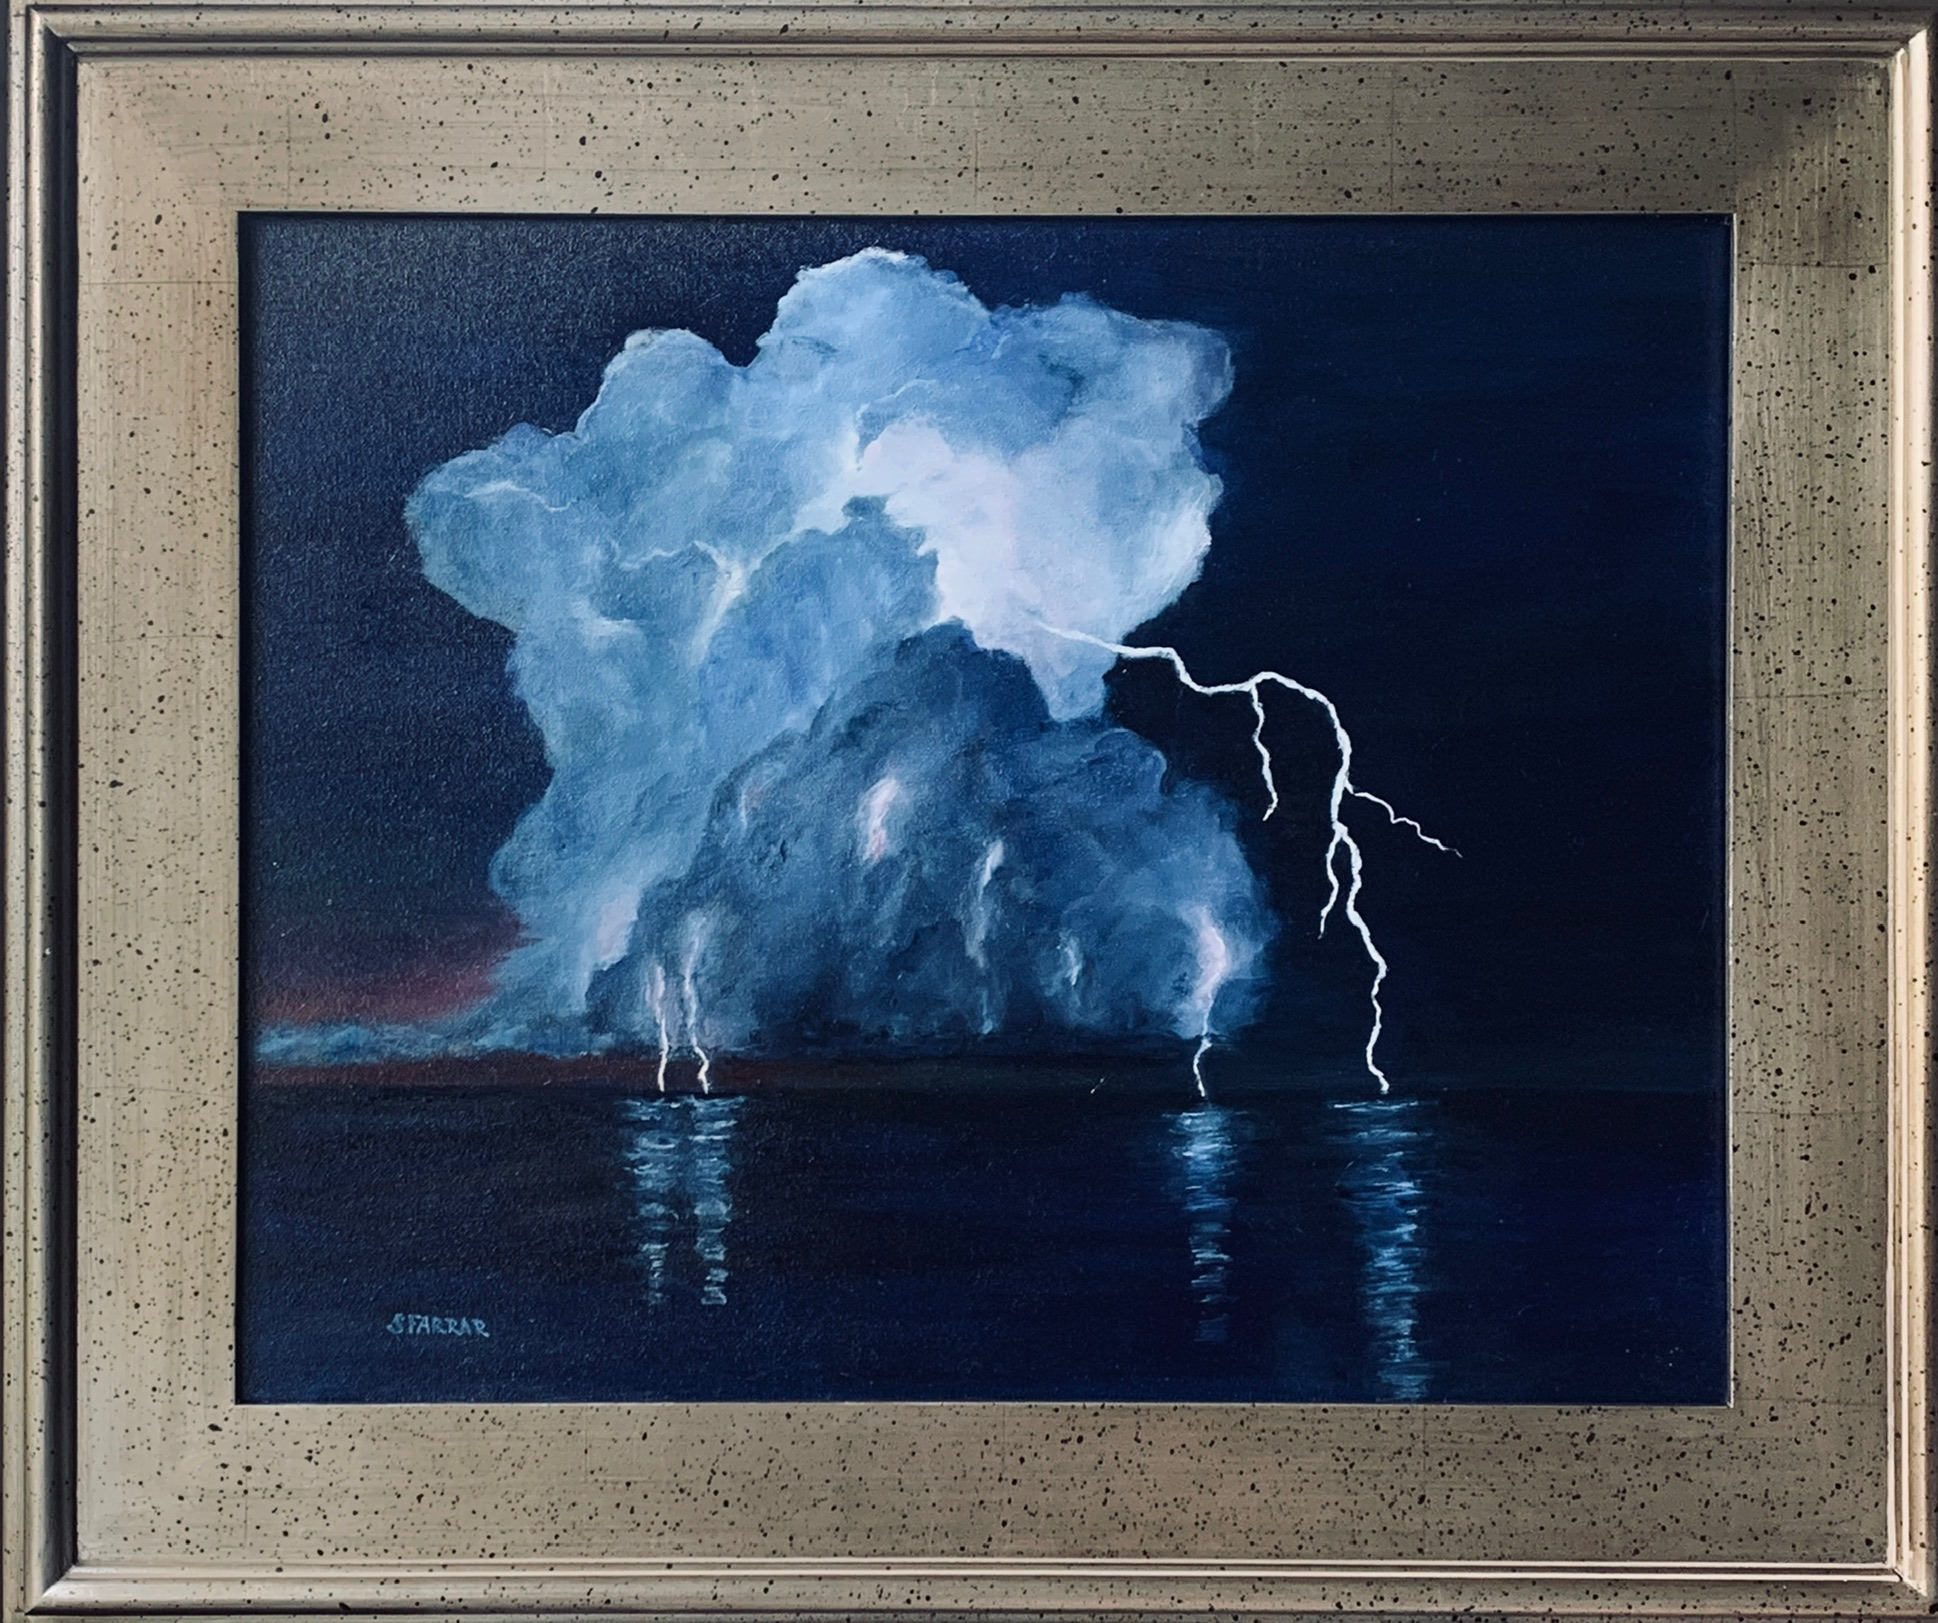 'Surrounding Storms', oil by Susan Farrar ($495) ⎼ 'We have all been experiencing stormy times these past months. It seems like ominous clouds are surrounding us and weighing us down. During the isolation, I have realized how much I can live without and the things I truly value and miss the most. Hopefully, we can all reflect on our experiences and continue to learn and grow through these uncertain times.'